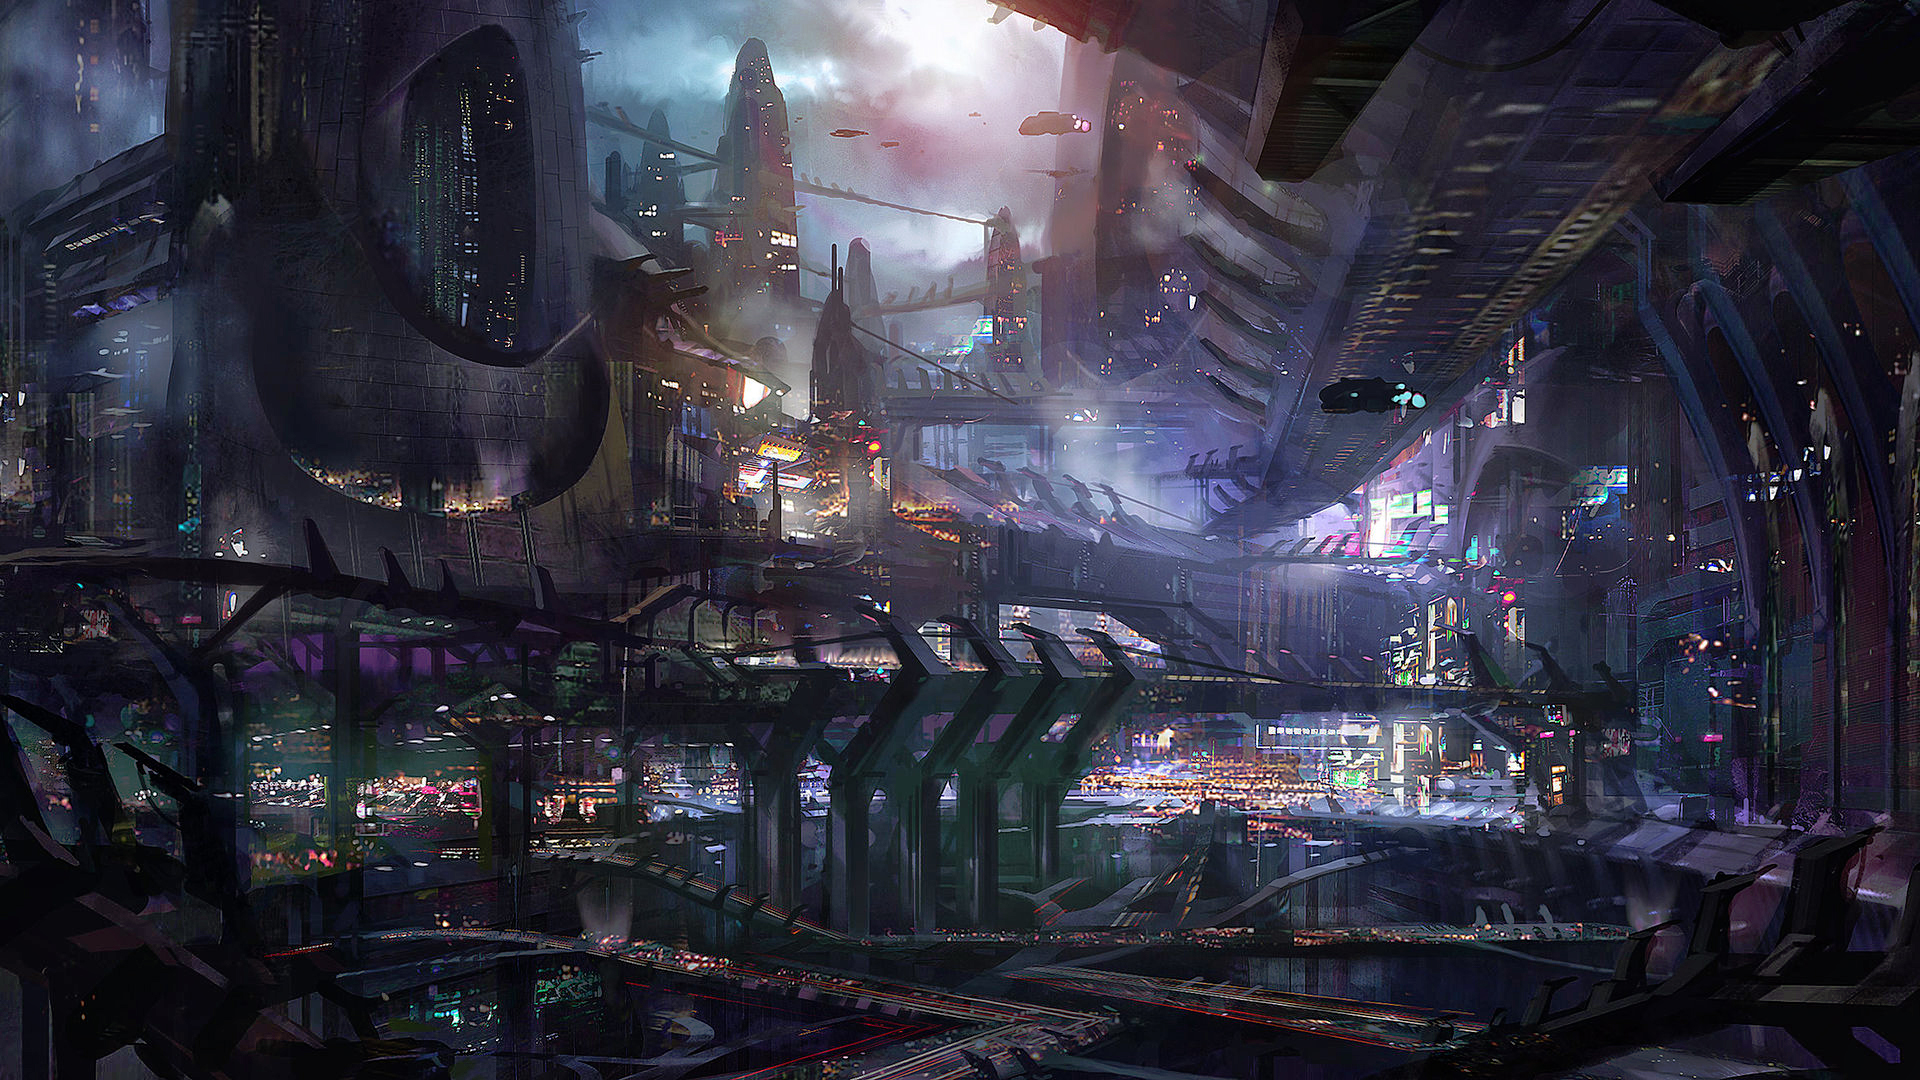 Sci Fi City 1920x1080 1   hebusorg   High Definition Wallpapers 1920x1080